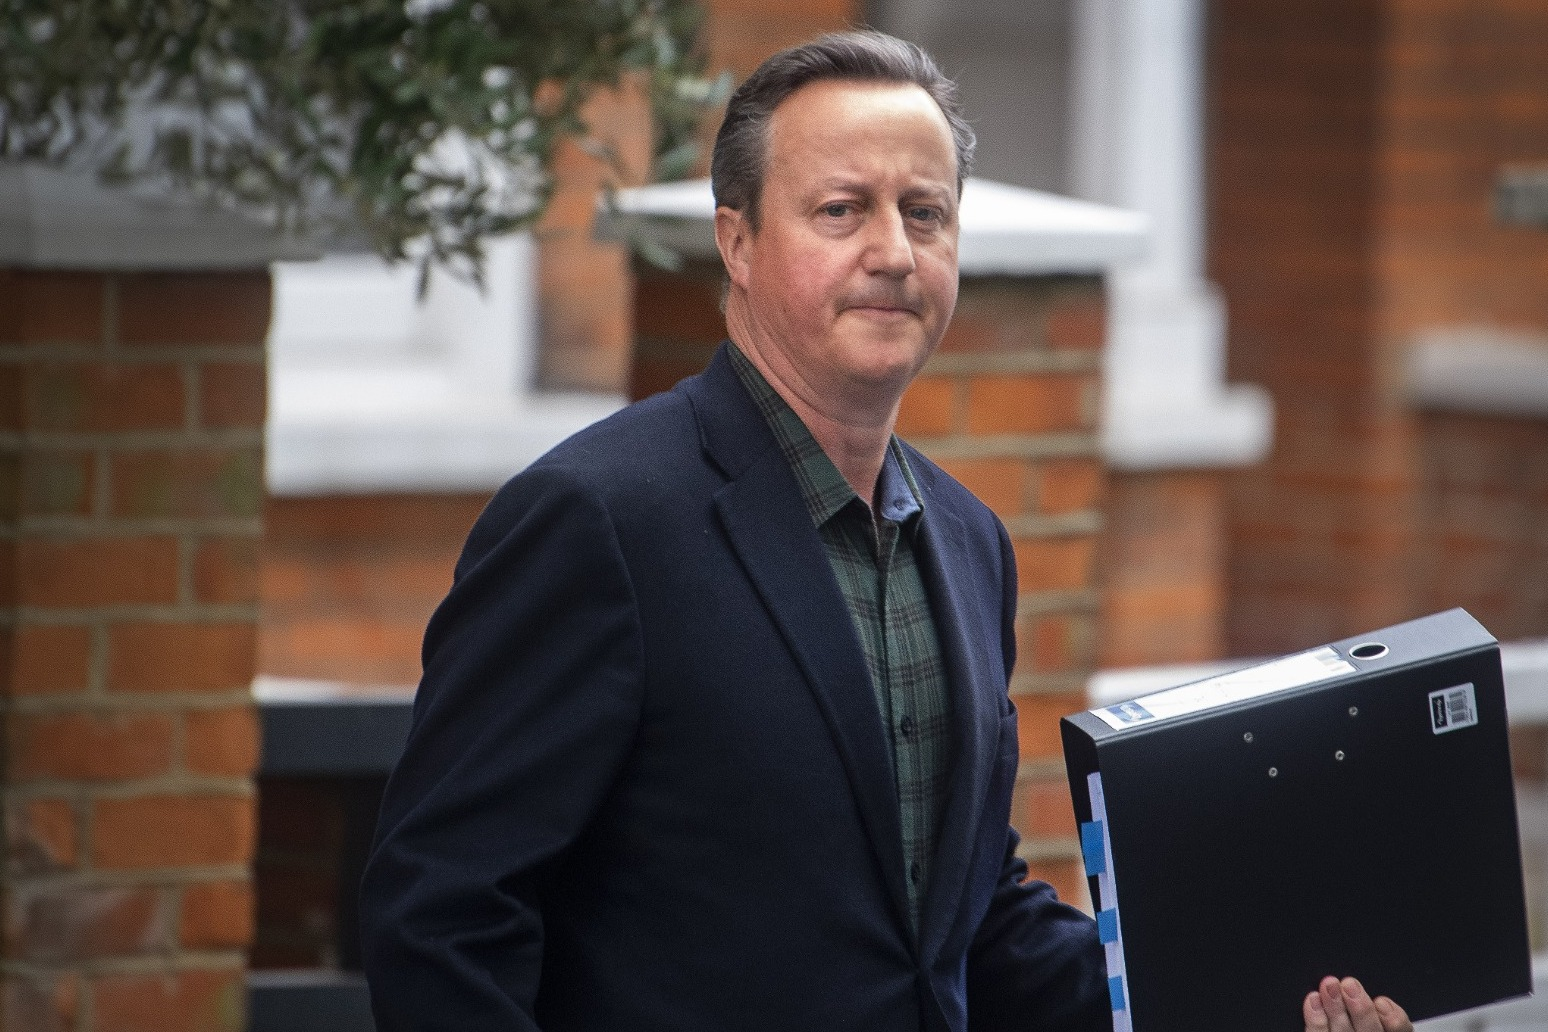 David Cameron 'made more than £7m' from Greensill Capital